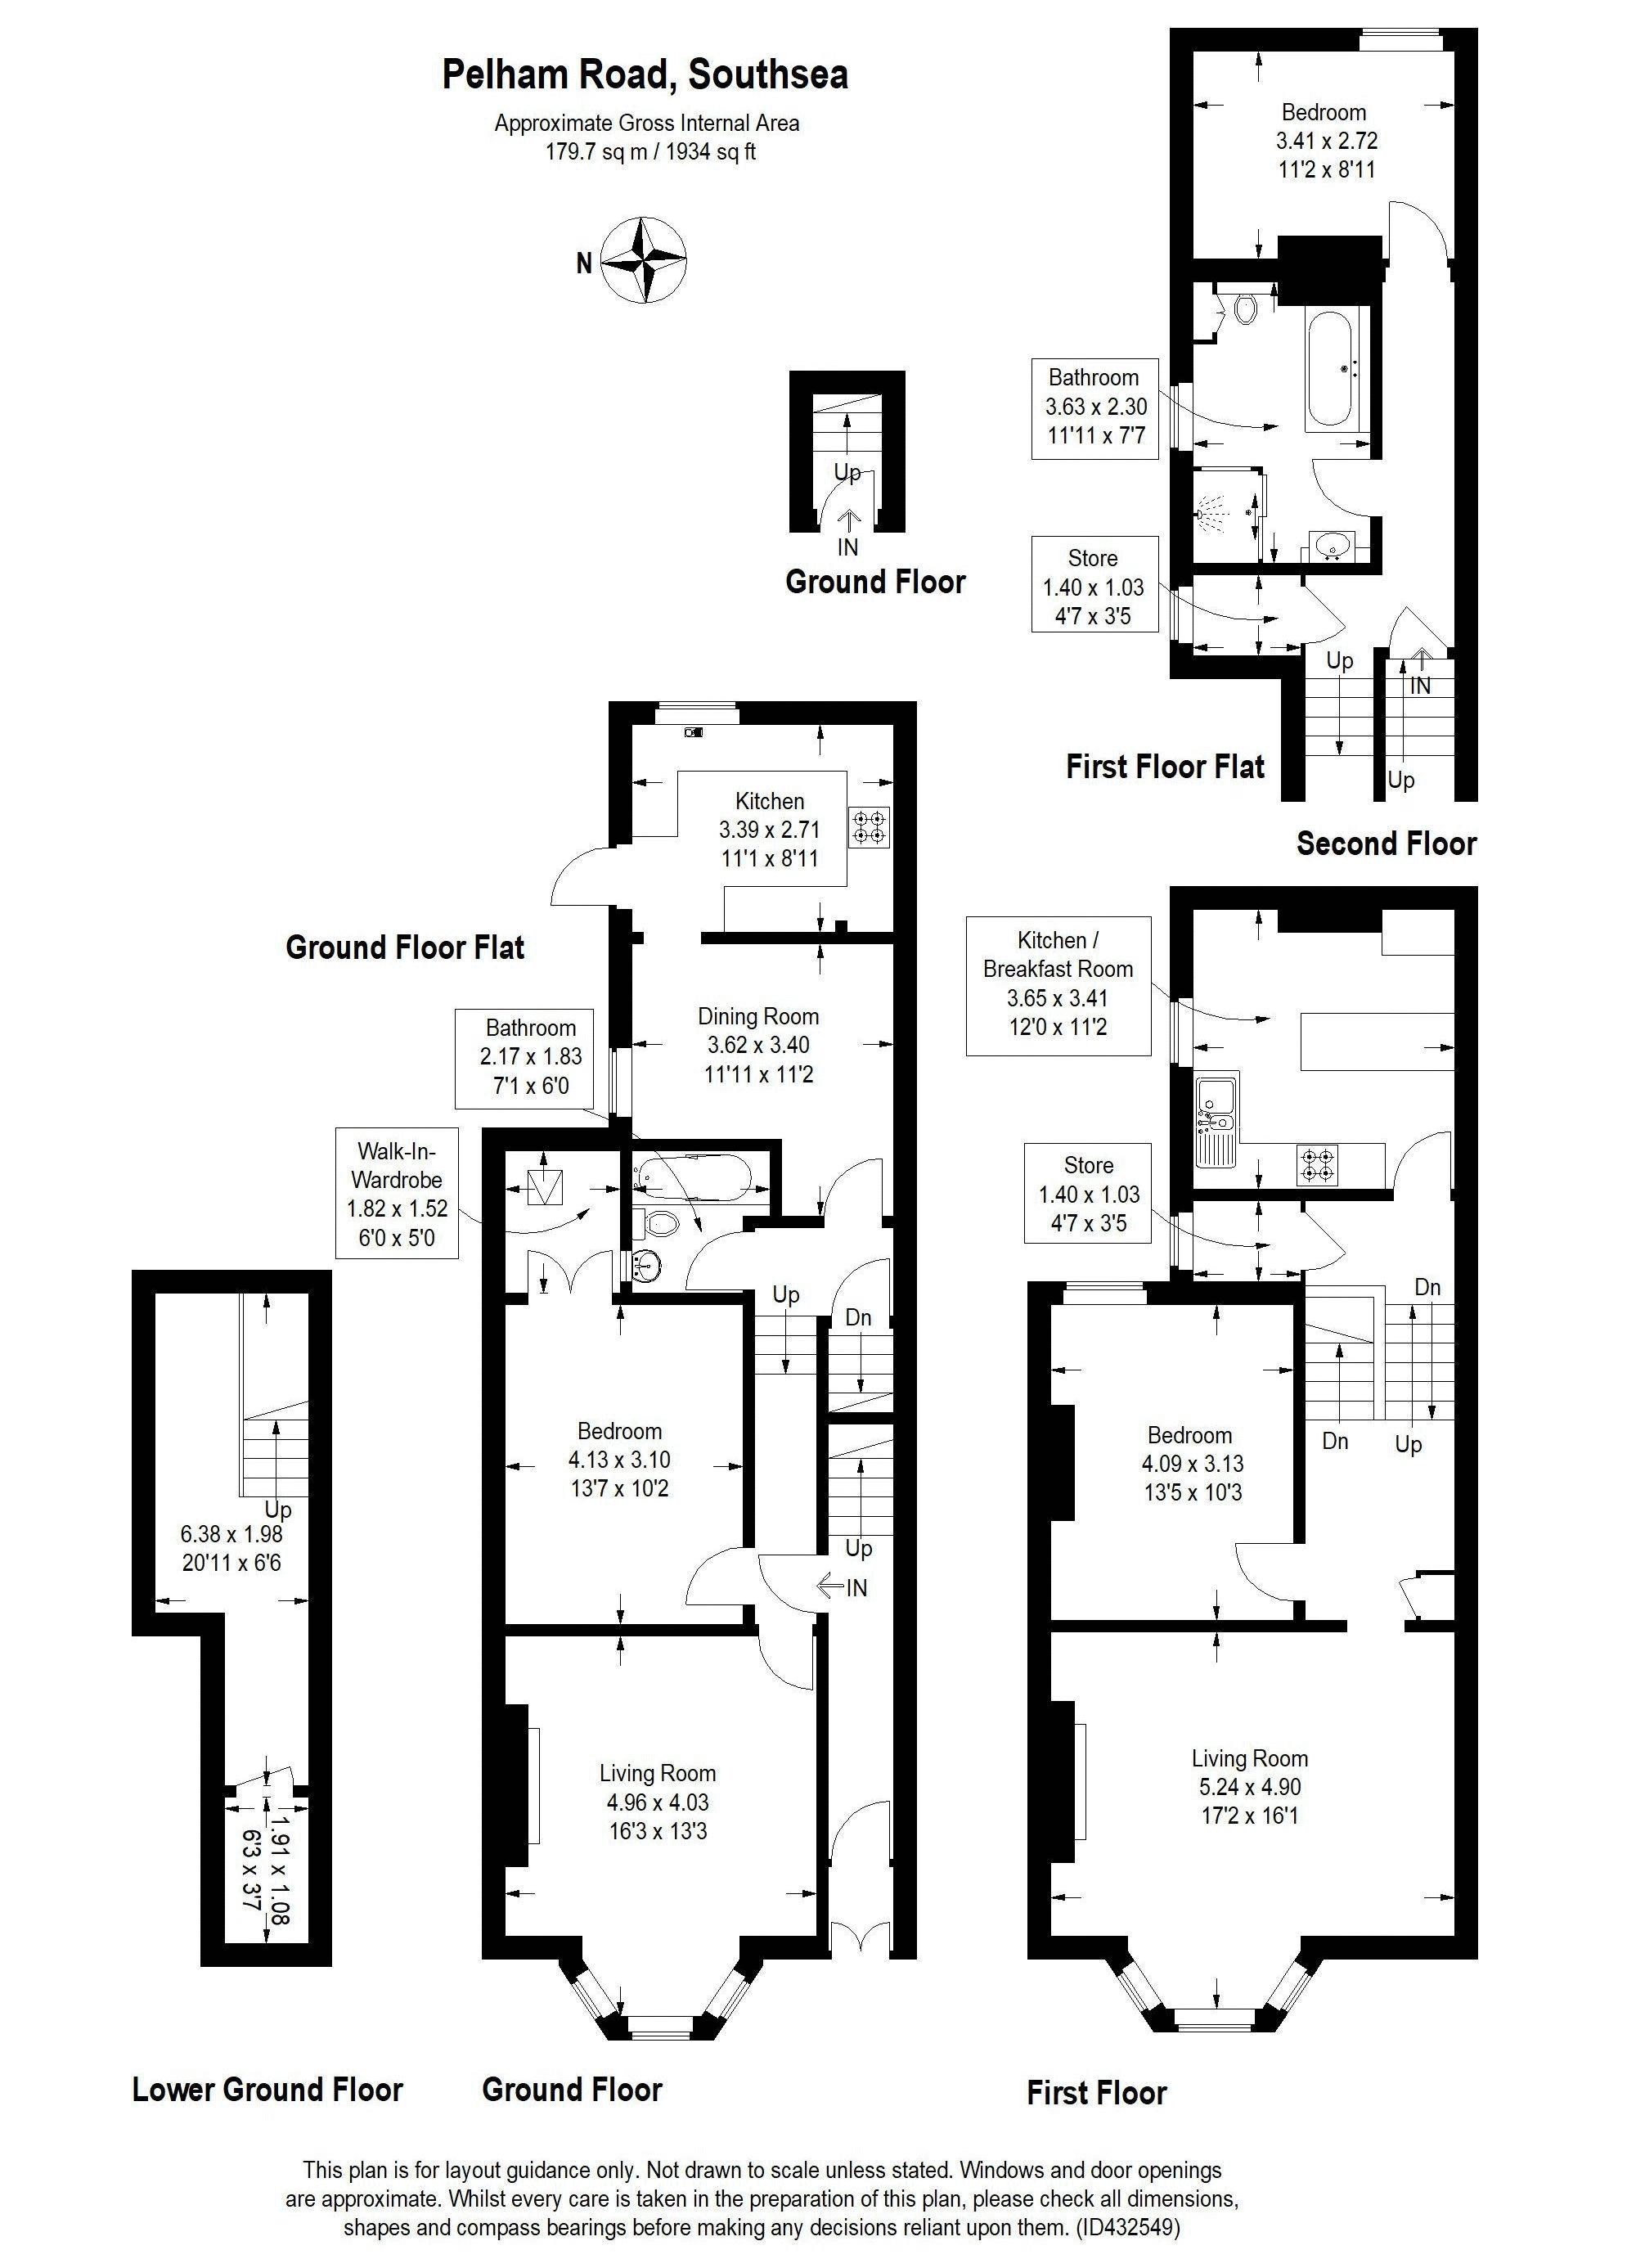 Ground & First Floor Apartments